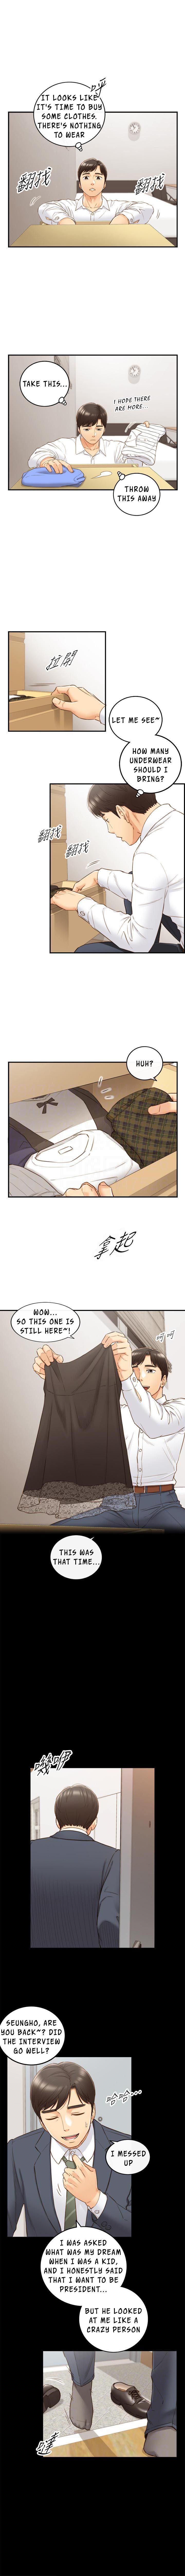 Young Boss - chapter 62 - #3